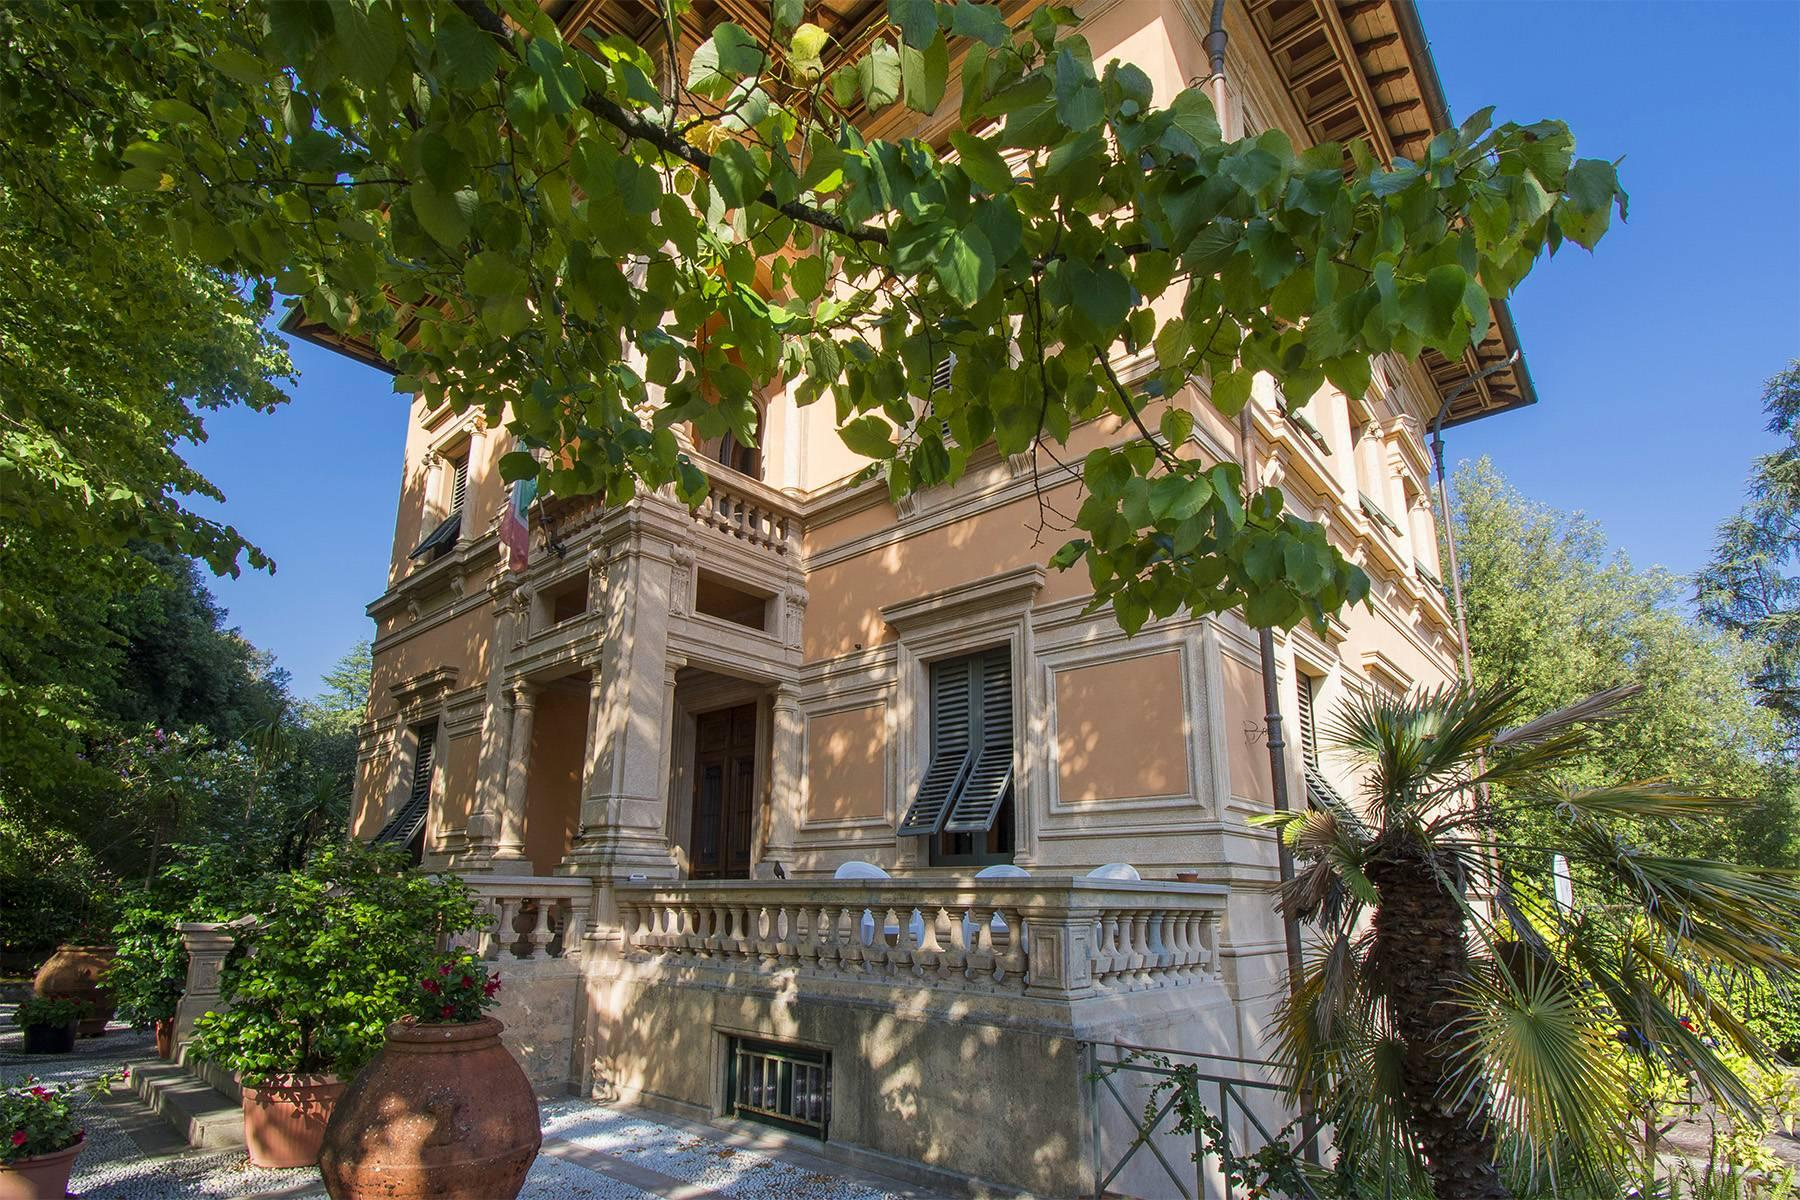 Luxury Art Nouveau Villa in the heart of Montecatini Terme - 1